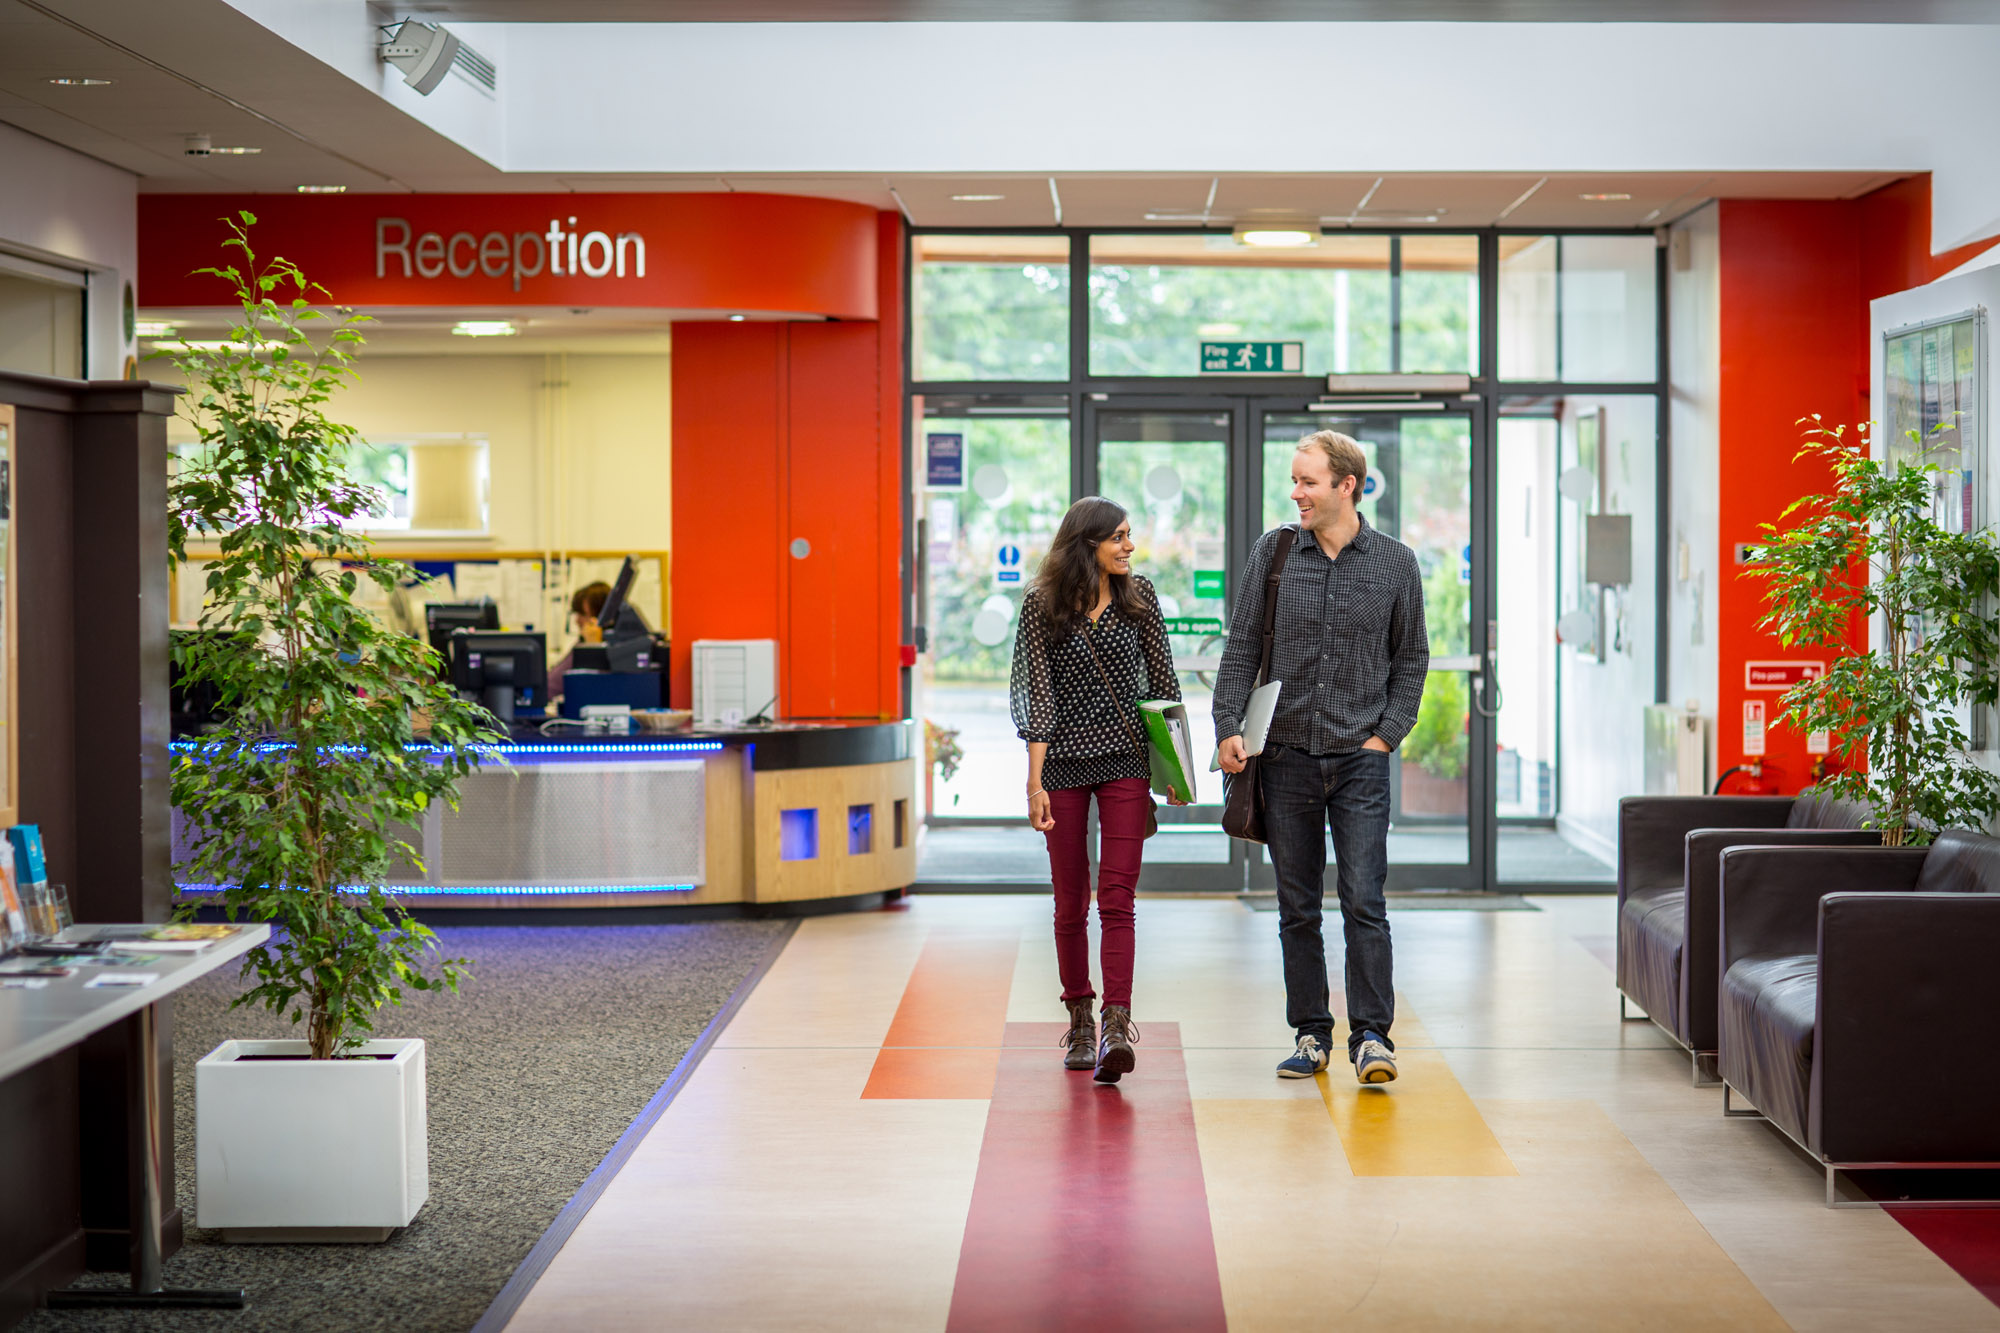 Leading student accommodation specialists merge… - https://roomslocal.co.uk/blog/leading-student-accommodation-specialists-merge #student #accommodation #specialists #merge